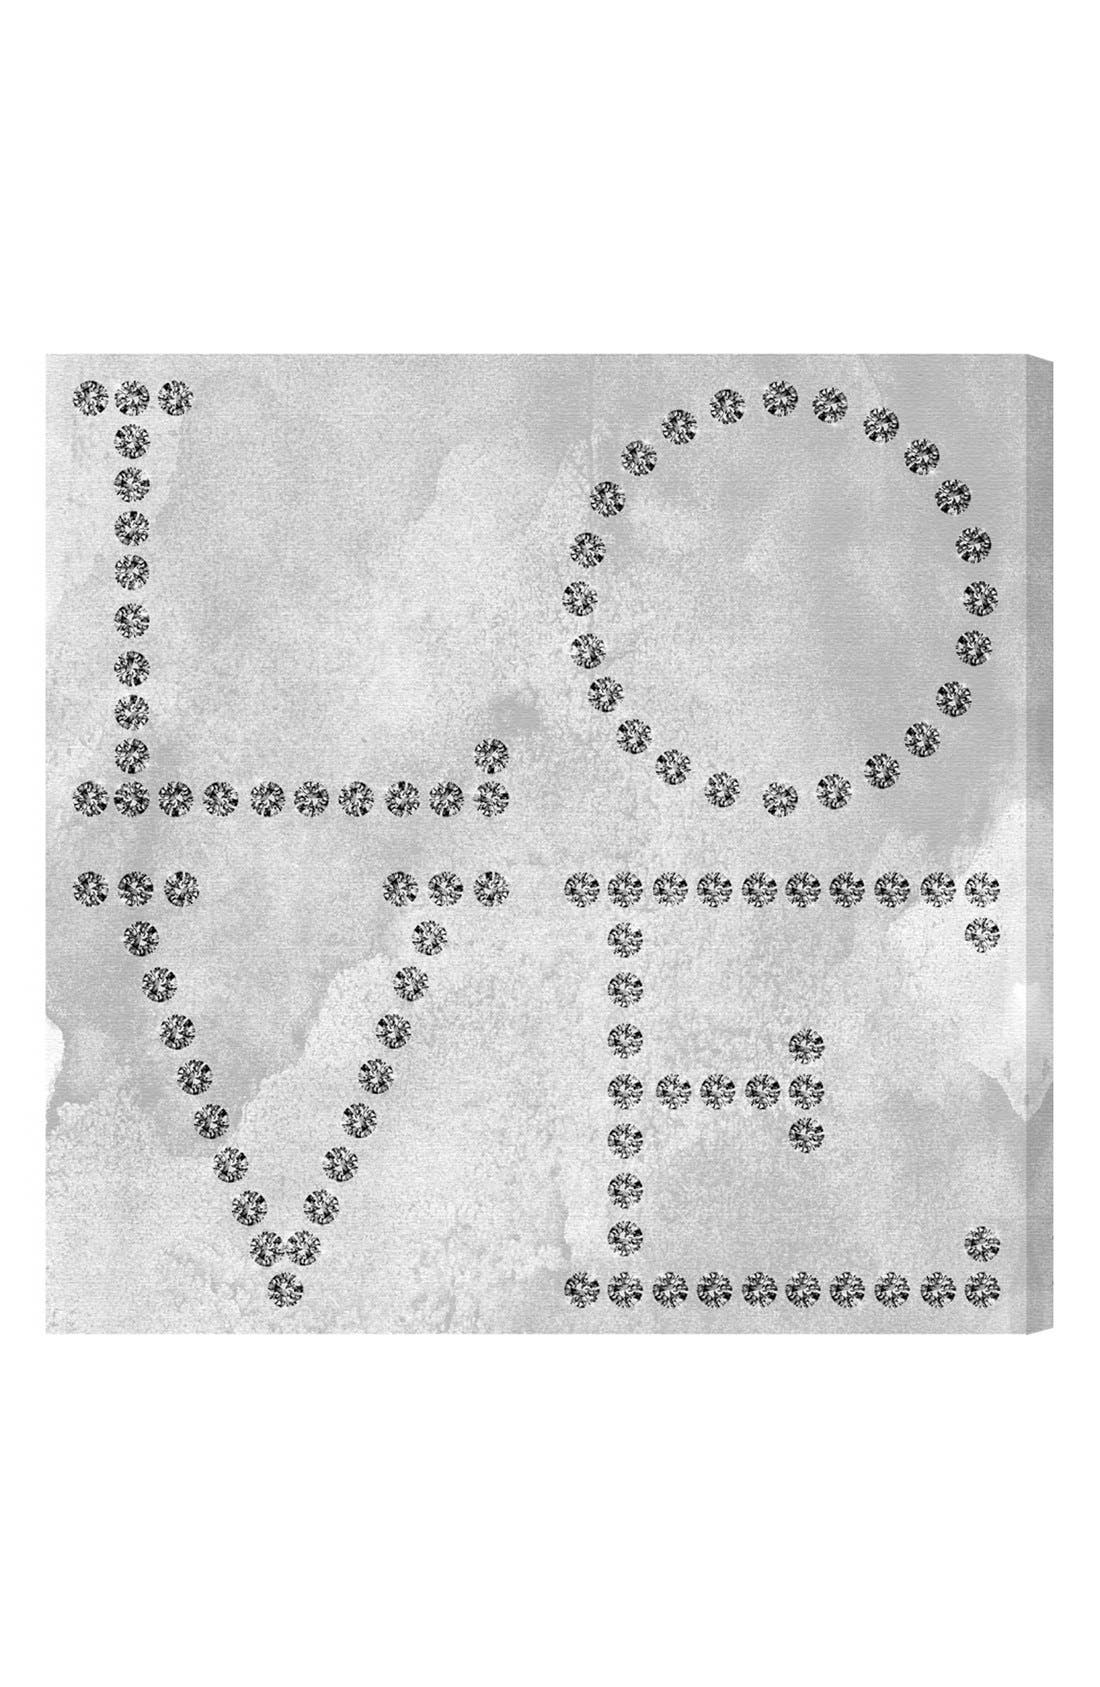 'Love Diamonds' Wall Art,                             Main thumbnail 1, color,                             Grey